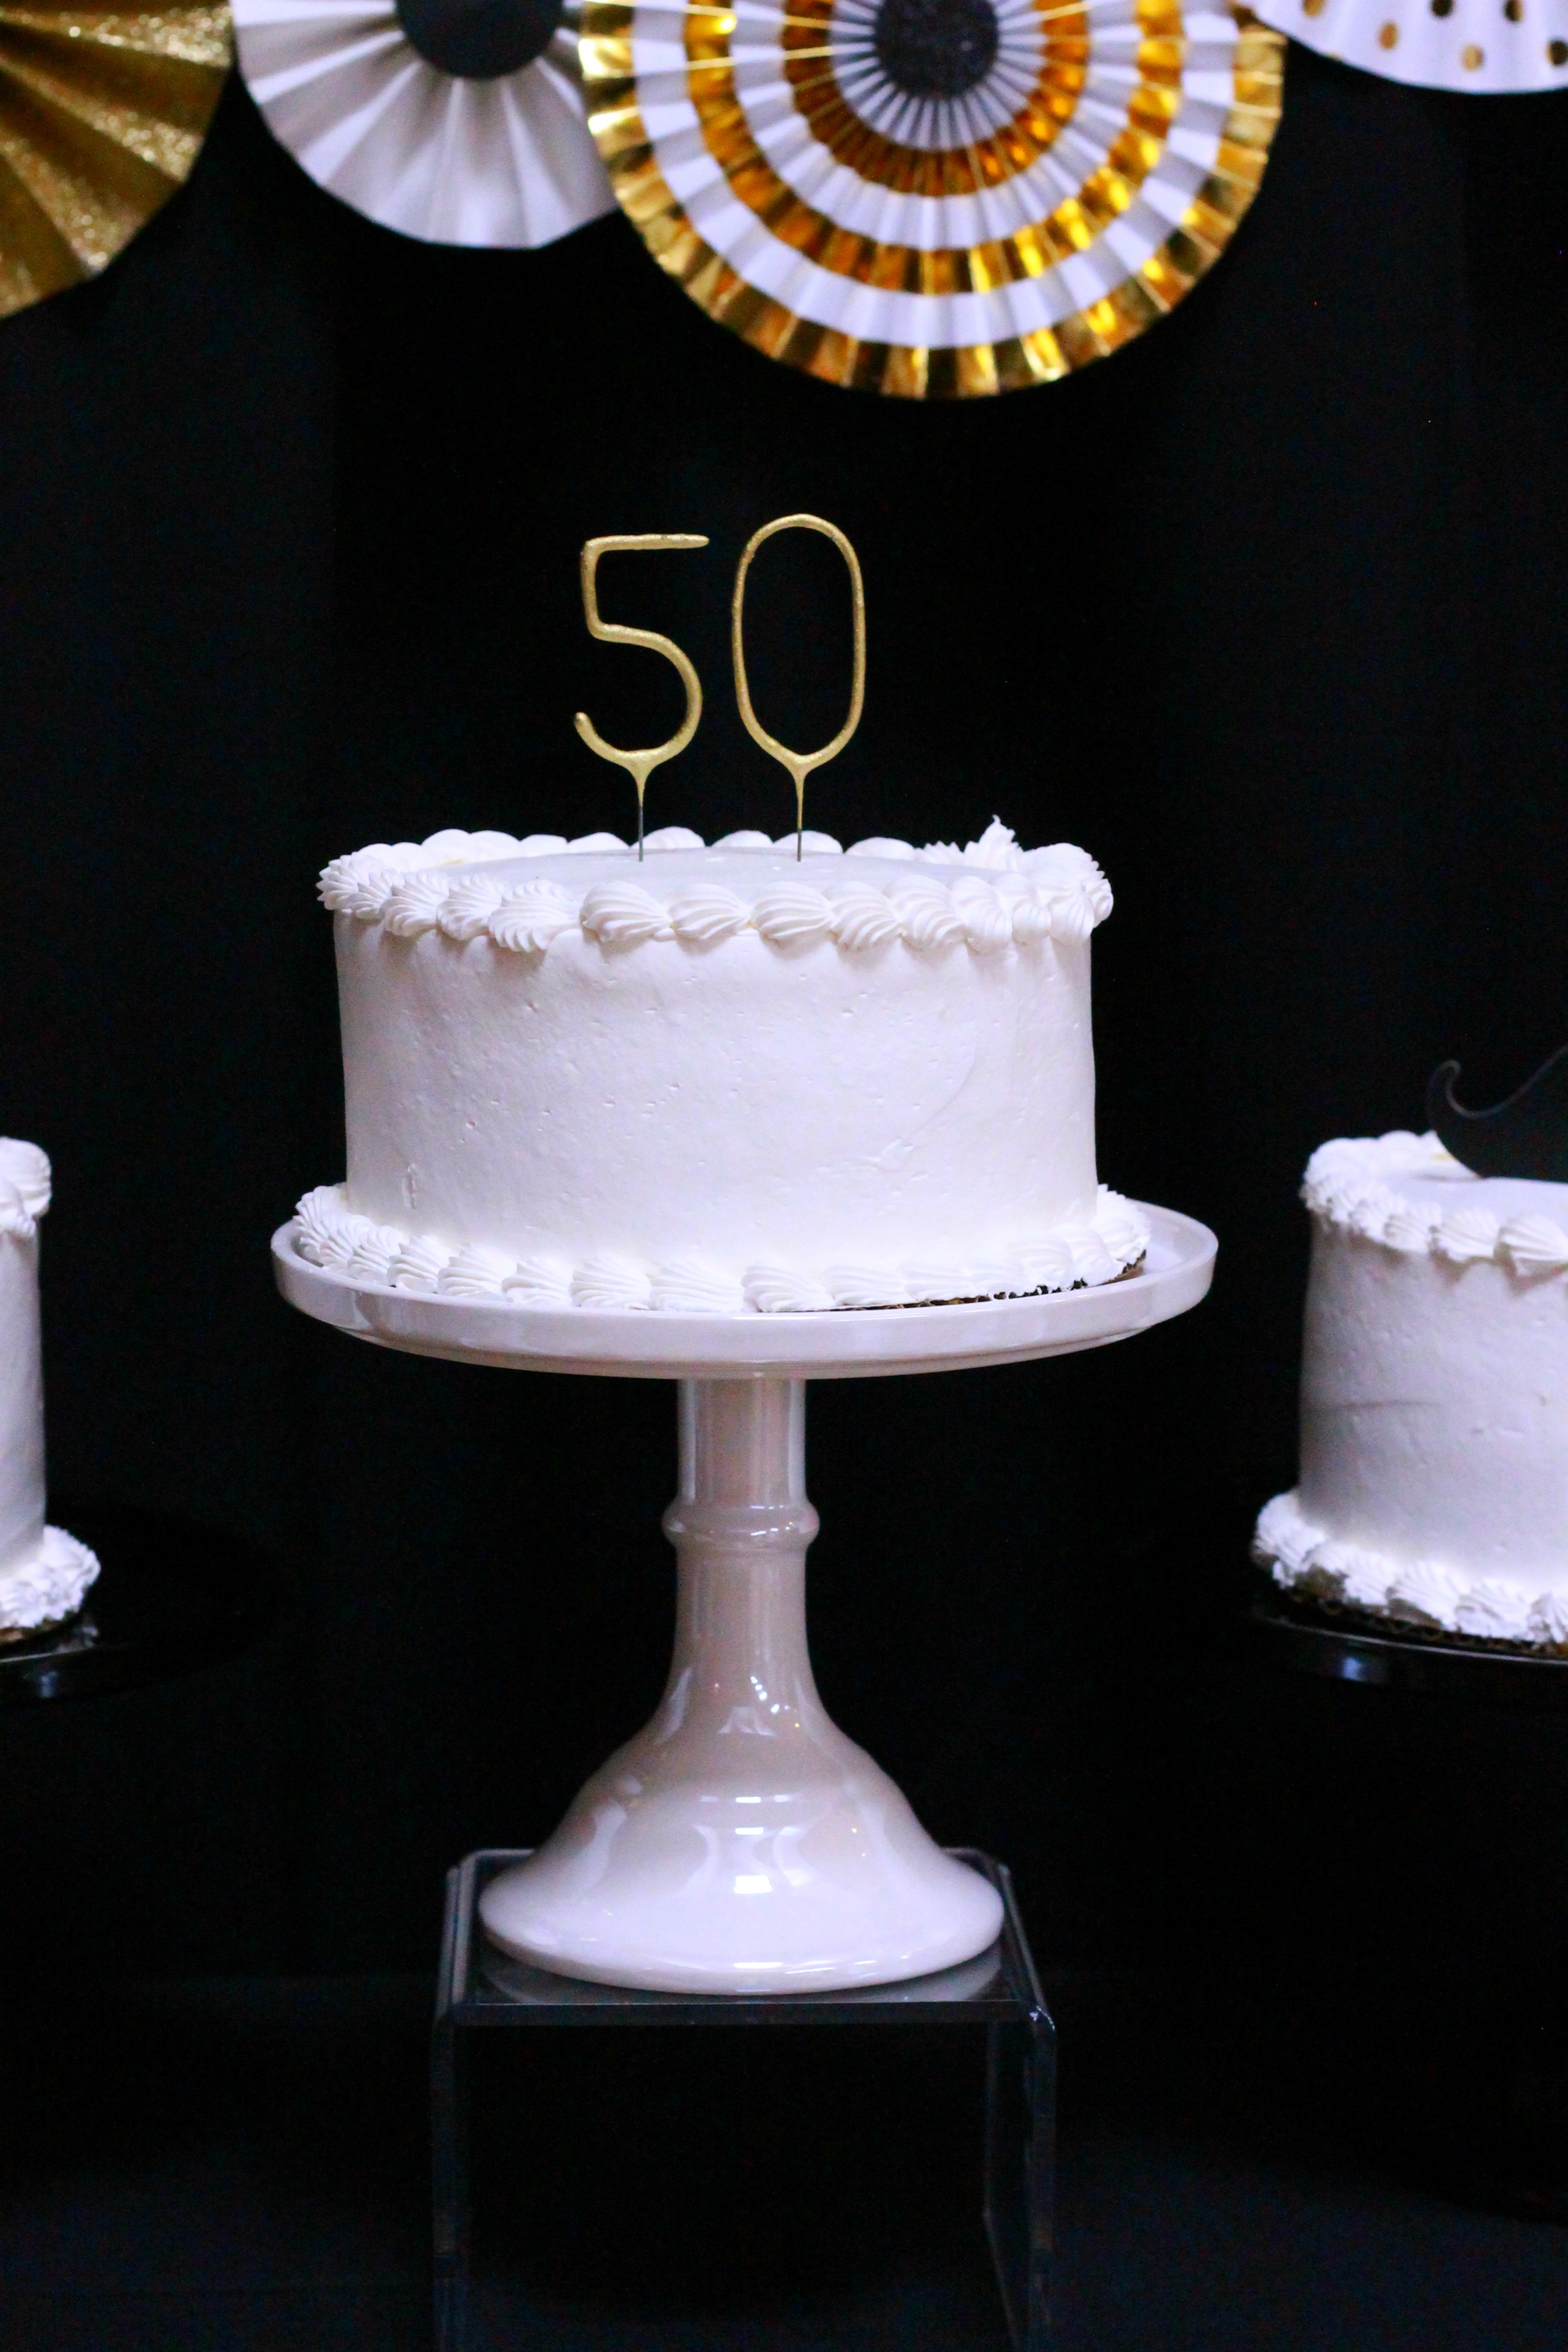 50th Birthday-black,gold and white party,50th party ideas,Happy 50th Birthday,birthday cake